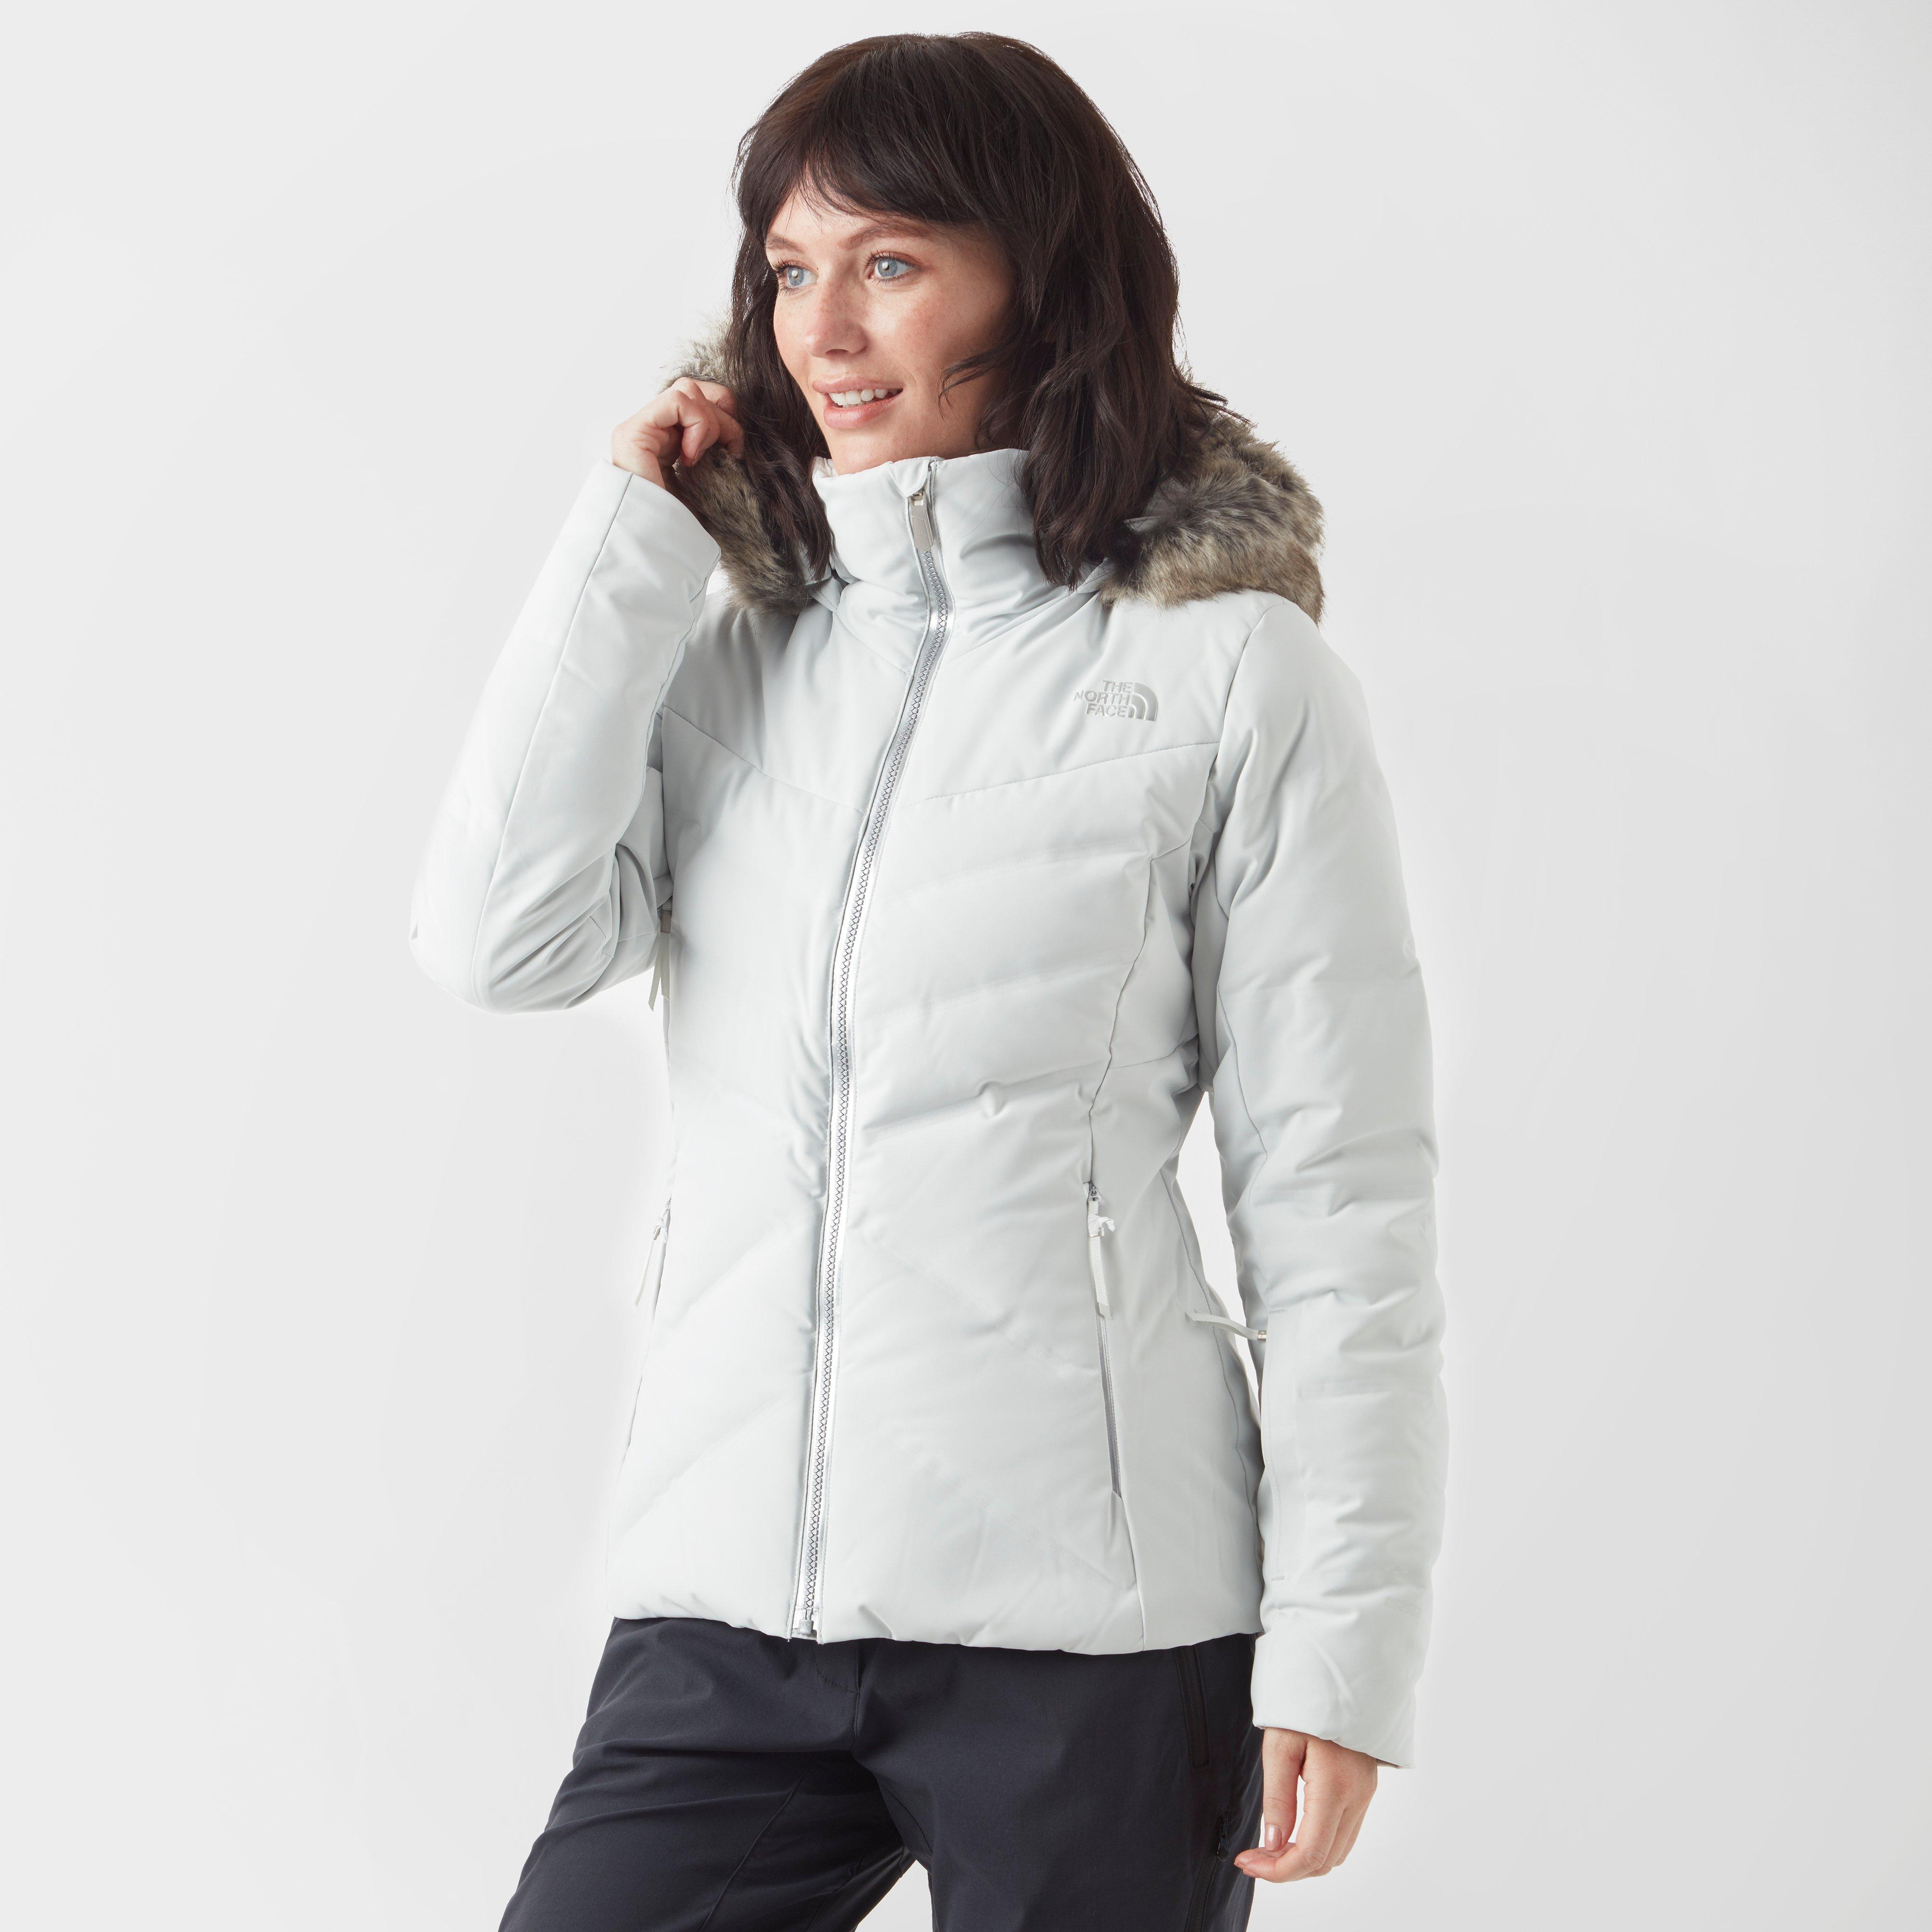 146976c24f Next. scroll downscroll up · THE NORTH FACE logo